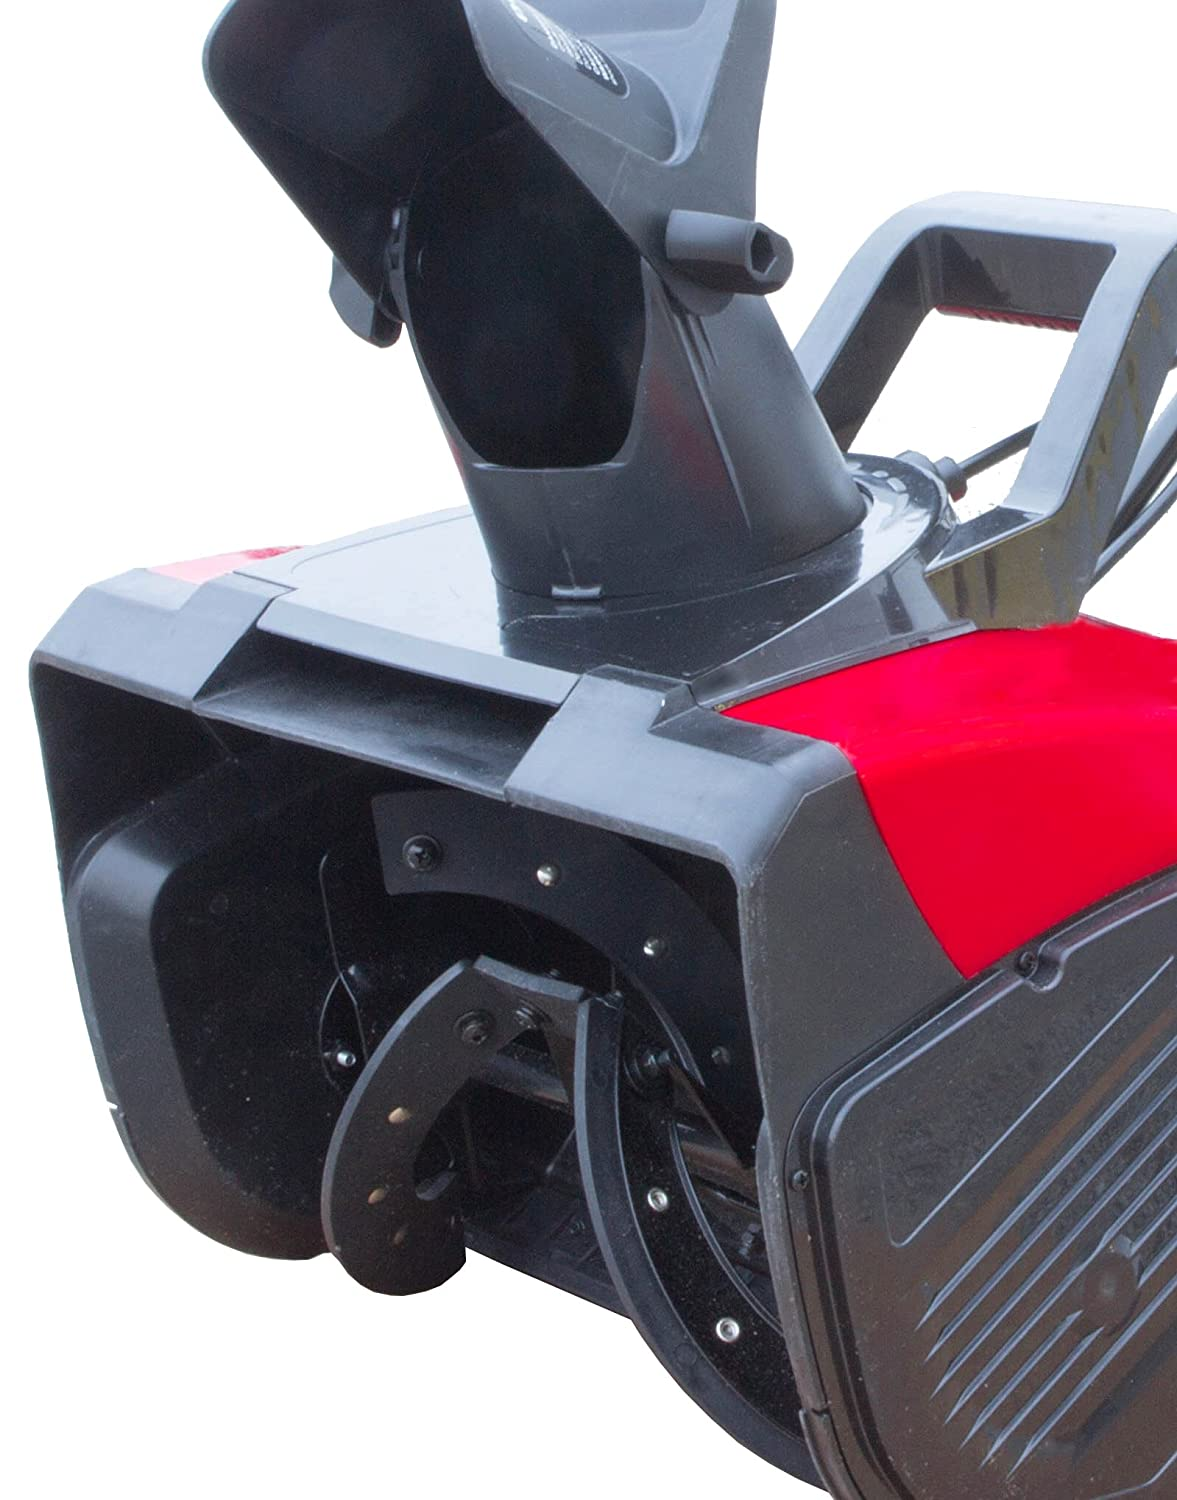 Power Smart Electric Snow Blower uses electricity